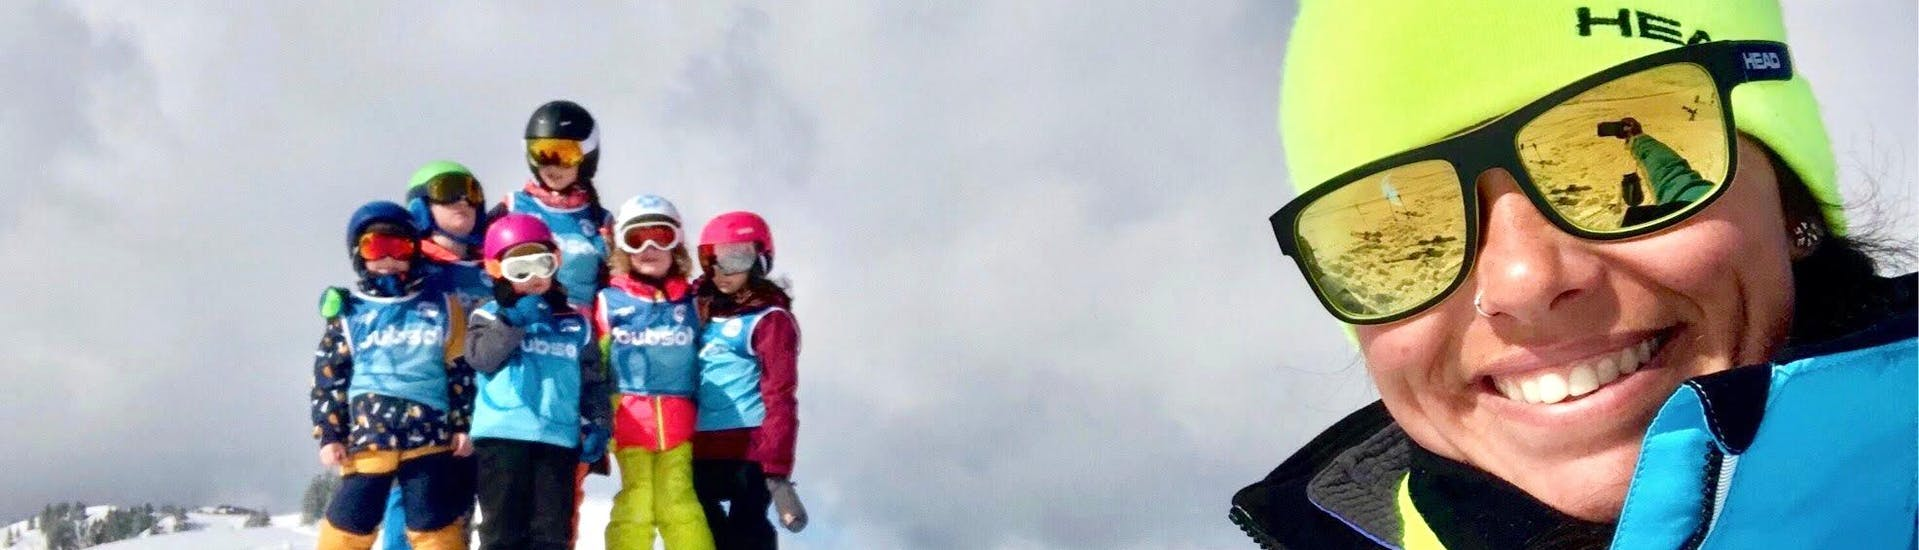 kids-ski-lessons-first-timers-afternoon-easy2ride-avoriaz-hero